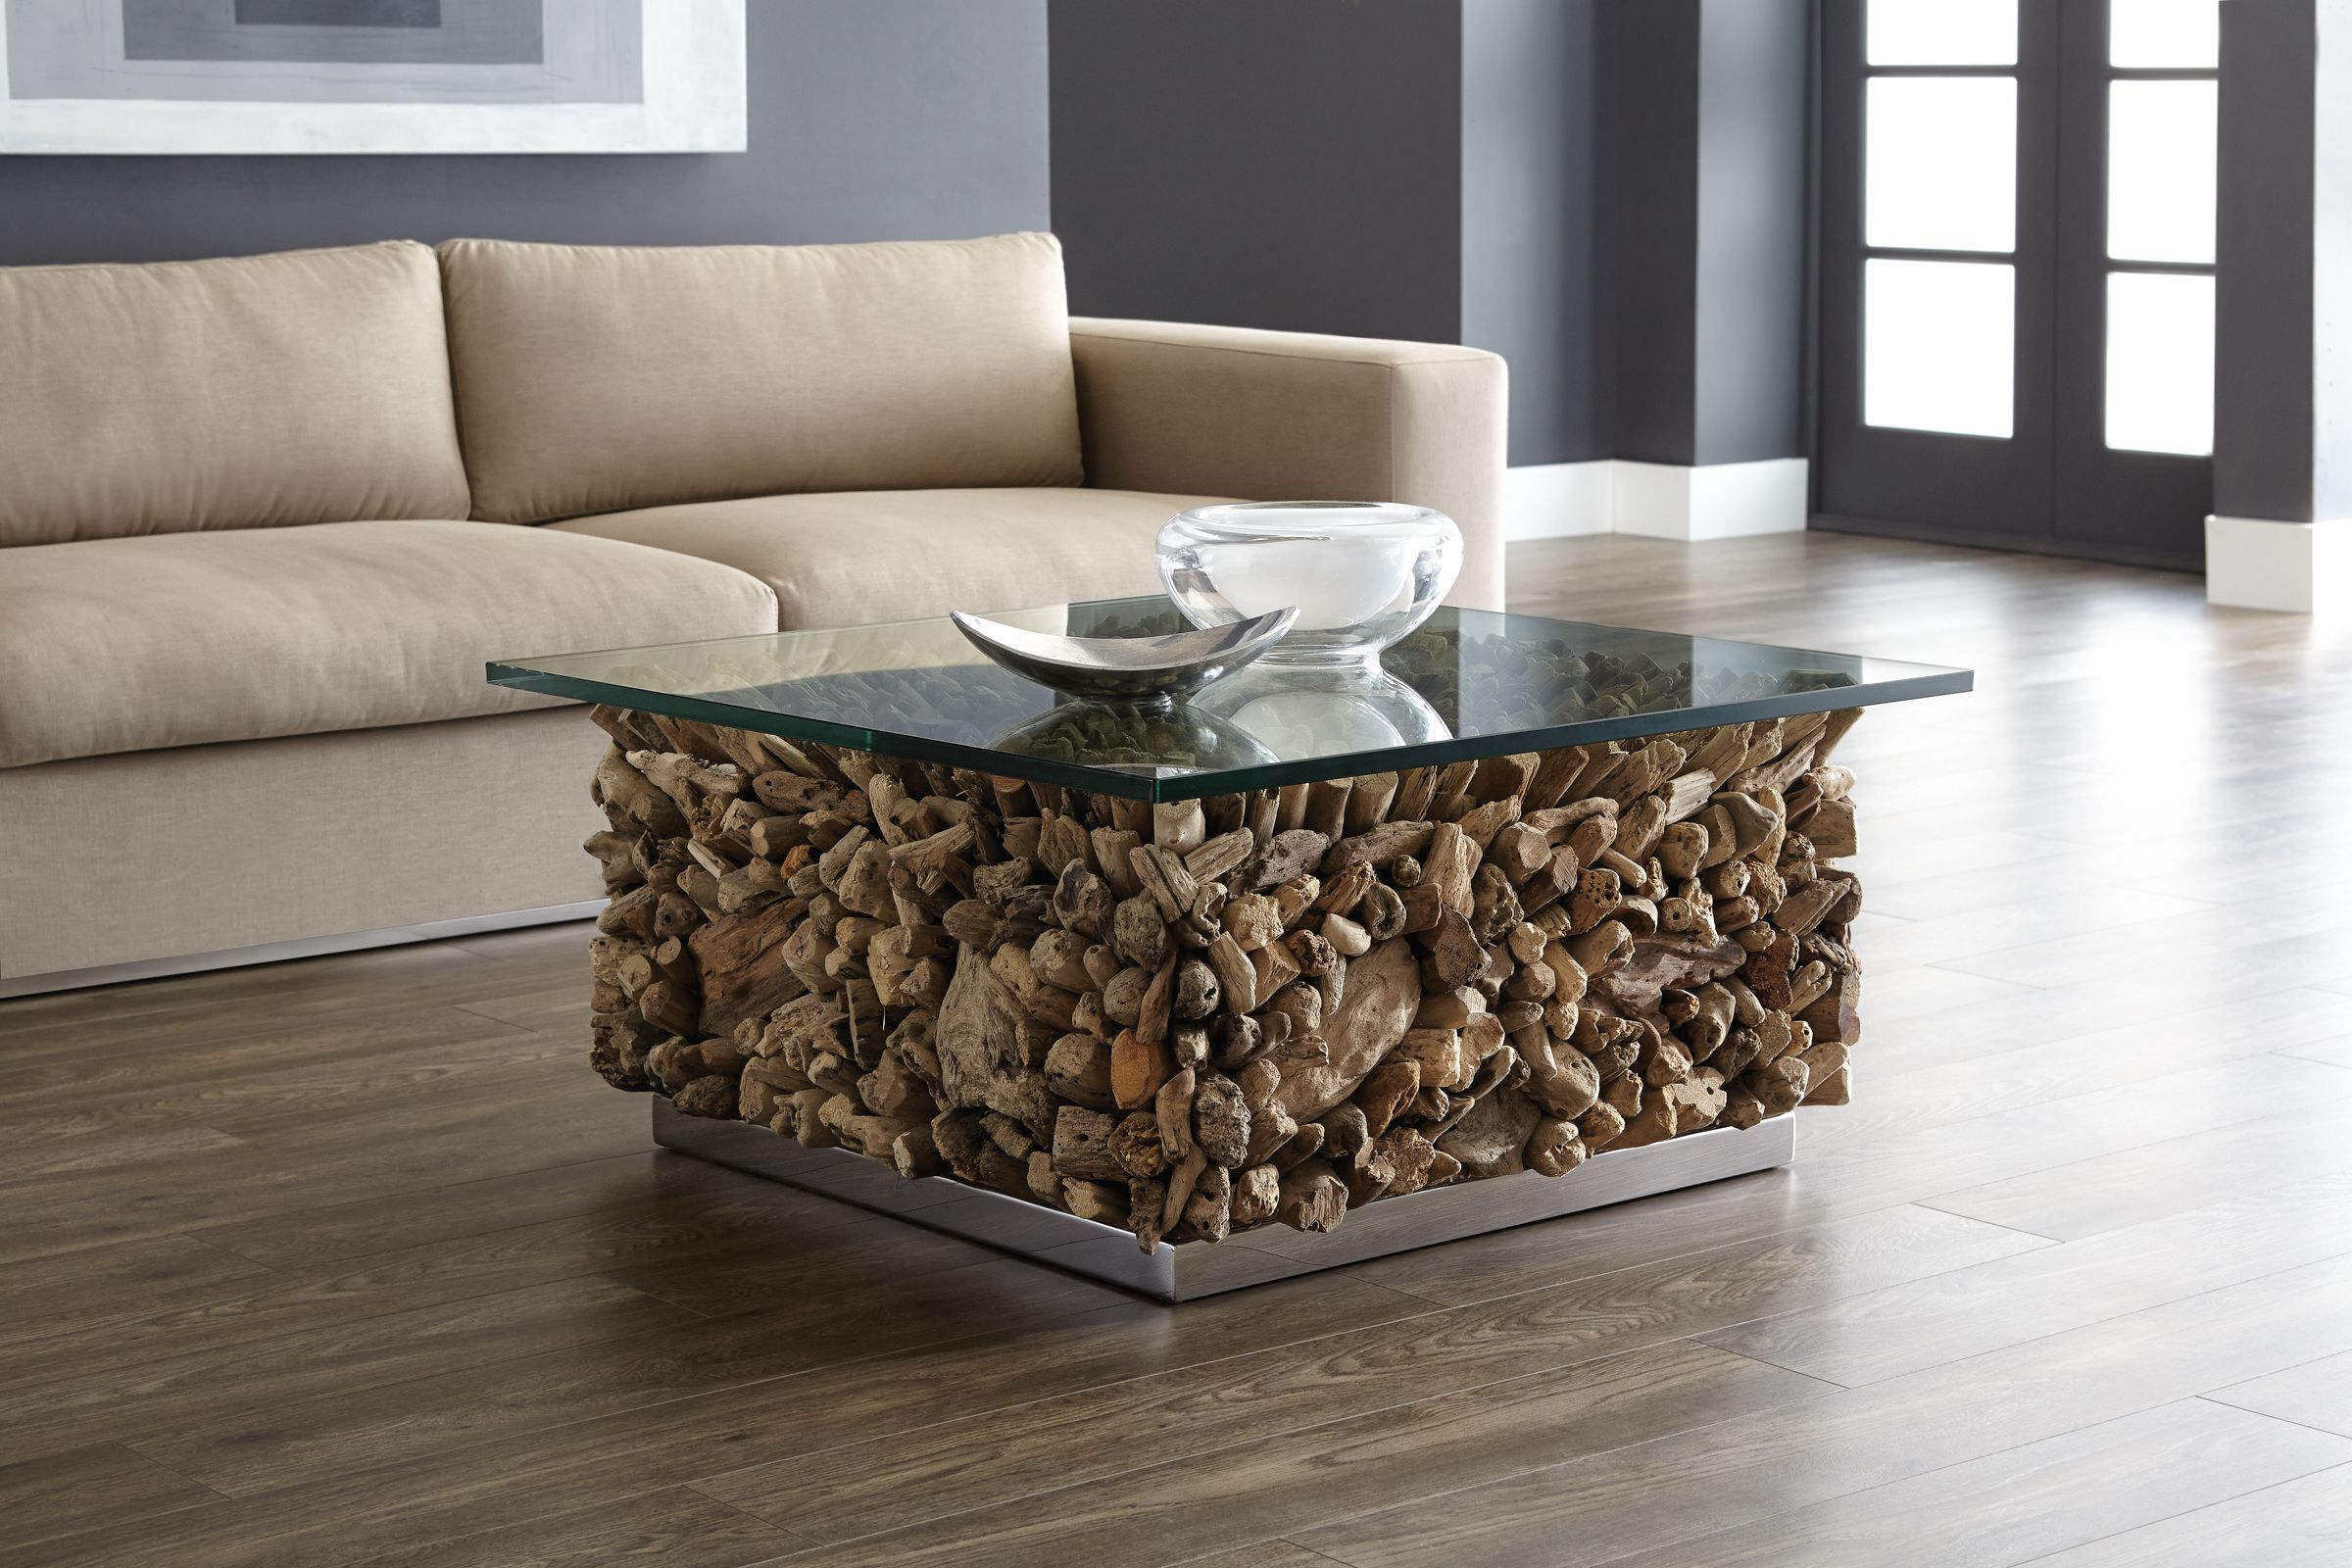 Visit Our Entire Collection Of Contemporary Transitional Furniture For The Modern Home Www Sunpan Com Coffee Table Driftwood Coffee Table Furniture [ 1600 x 2400 Pixel ]